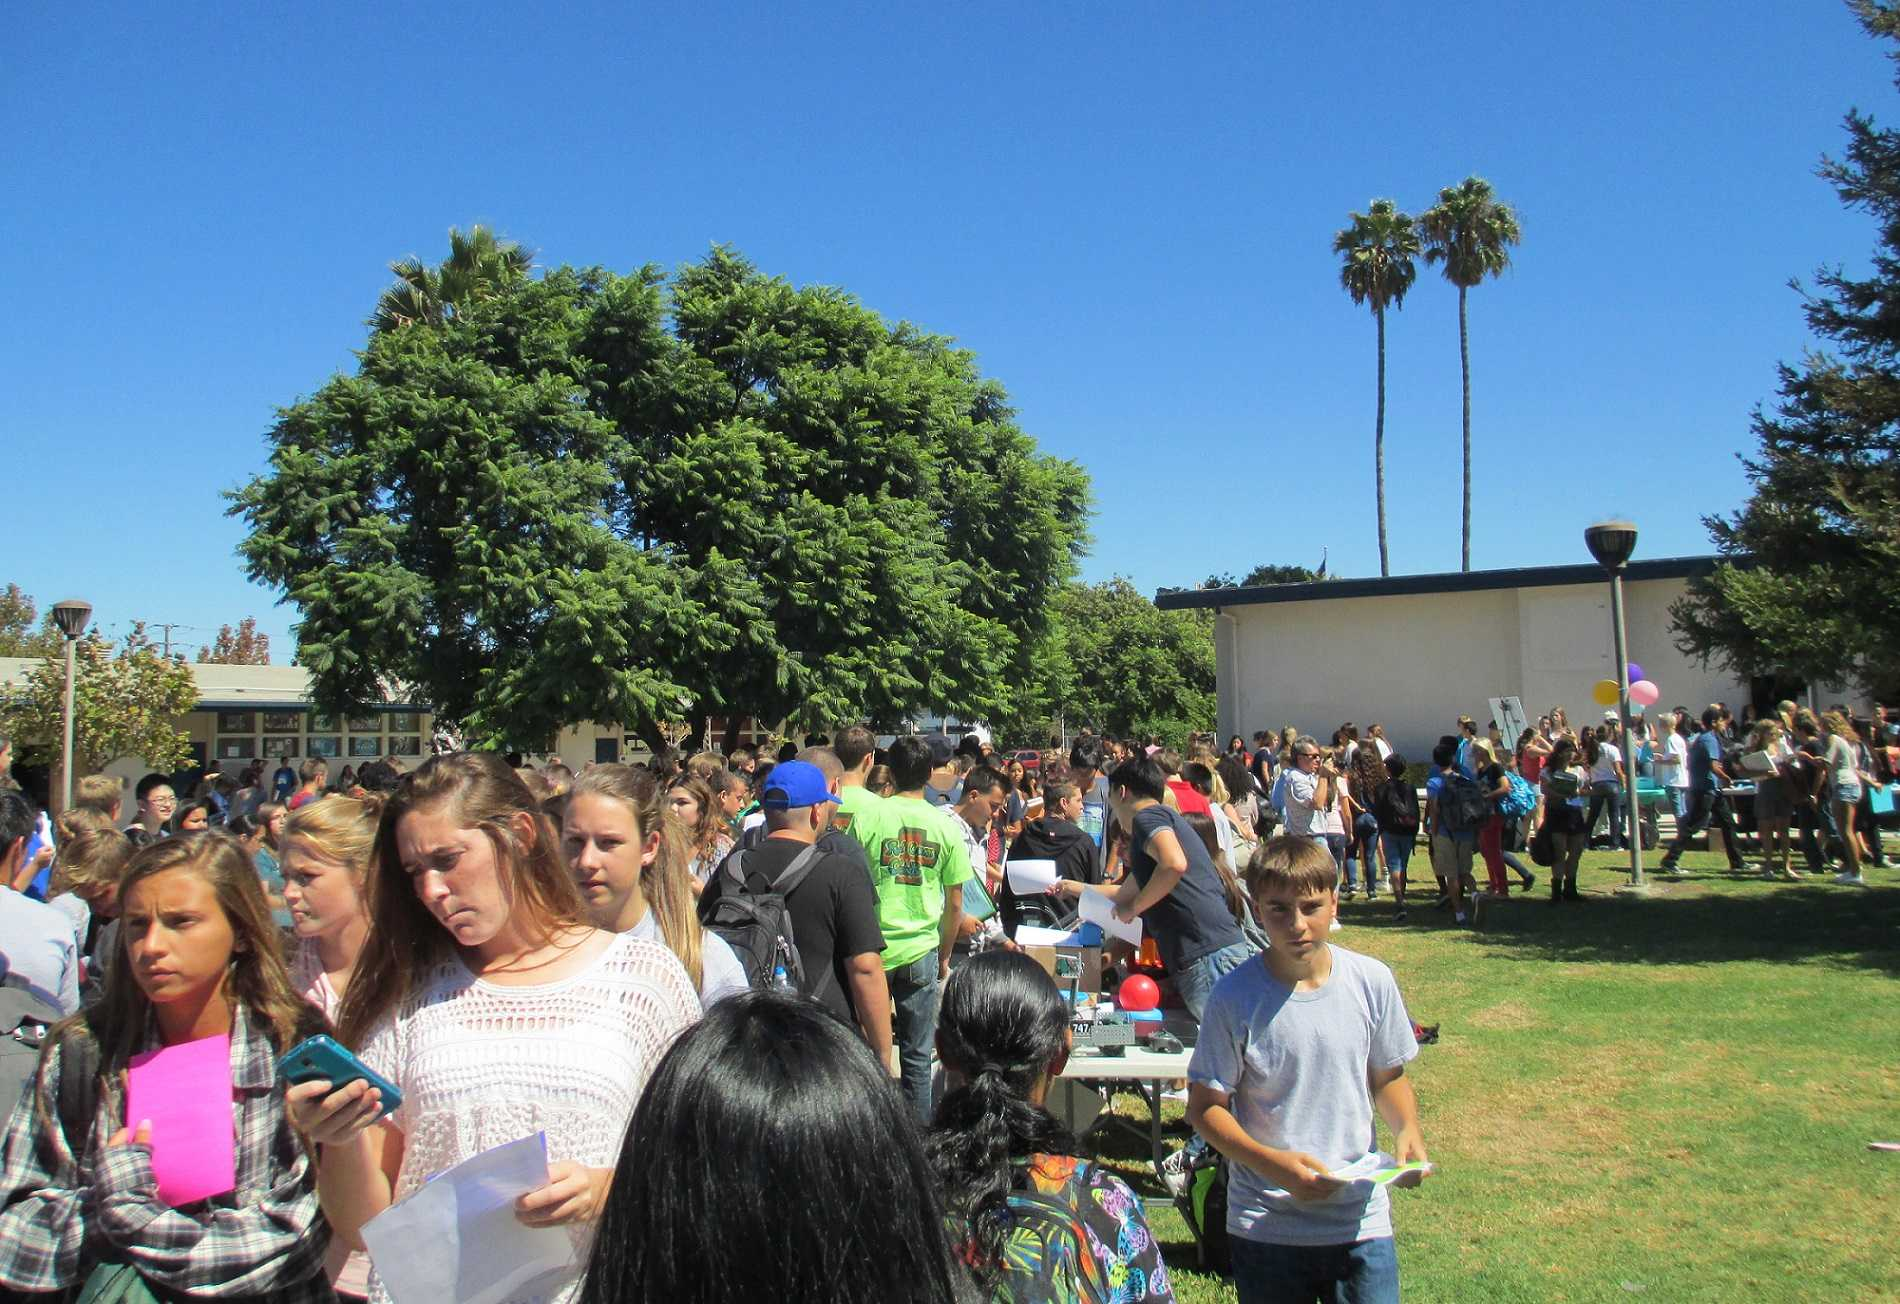 Students gather in hordes to